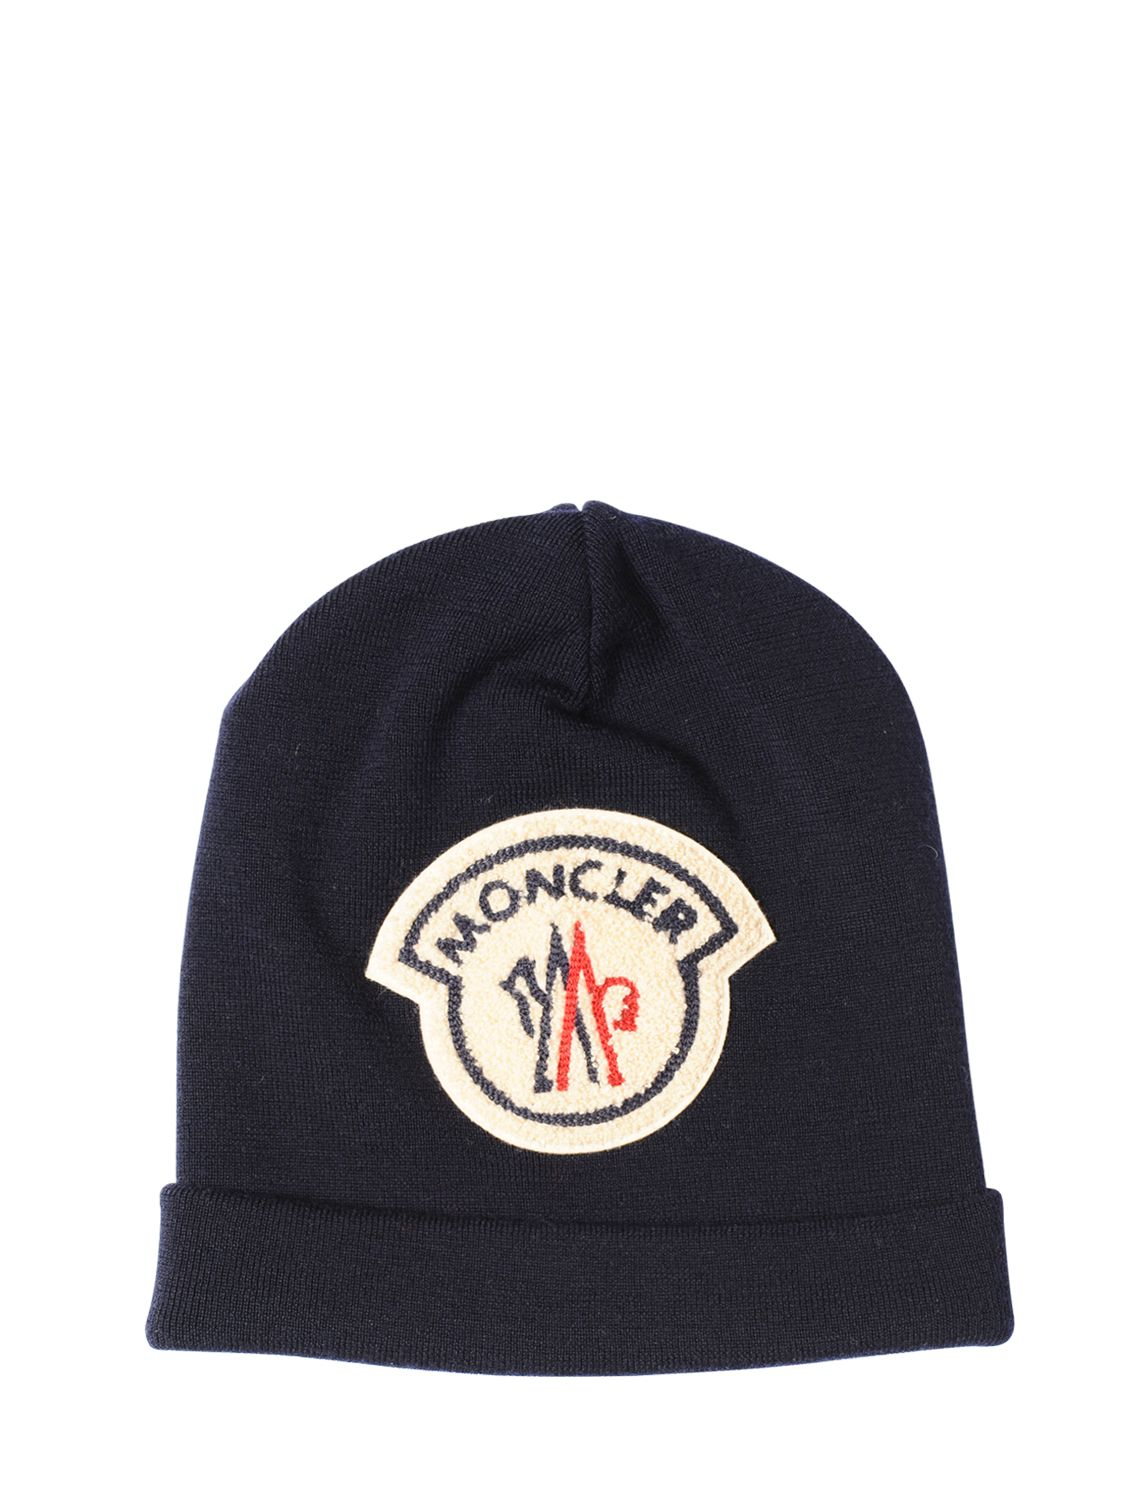 6dad508a829 Lyst - Moncler Ami Logo Patch On Wool Beanie Hat in Blue for Men